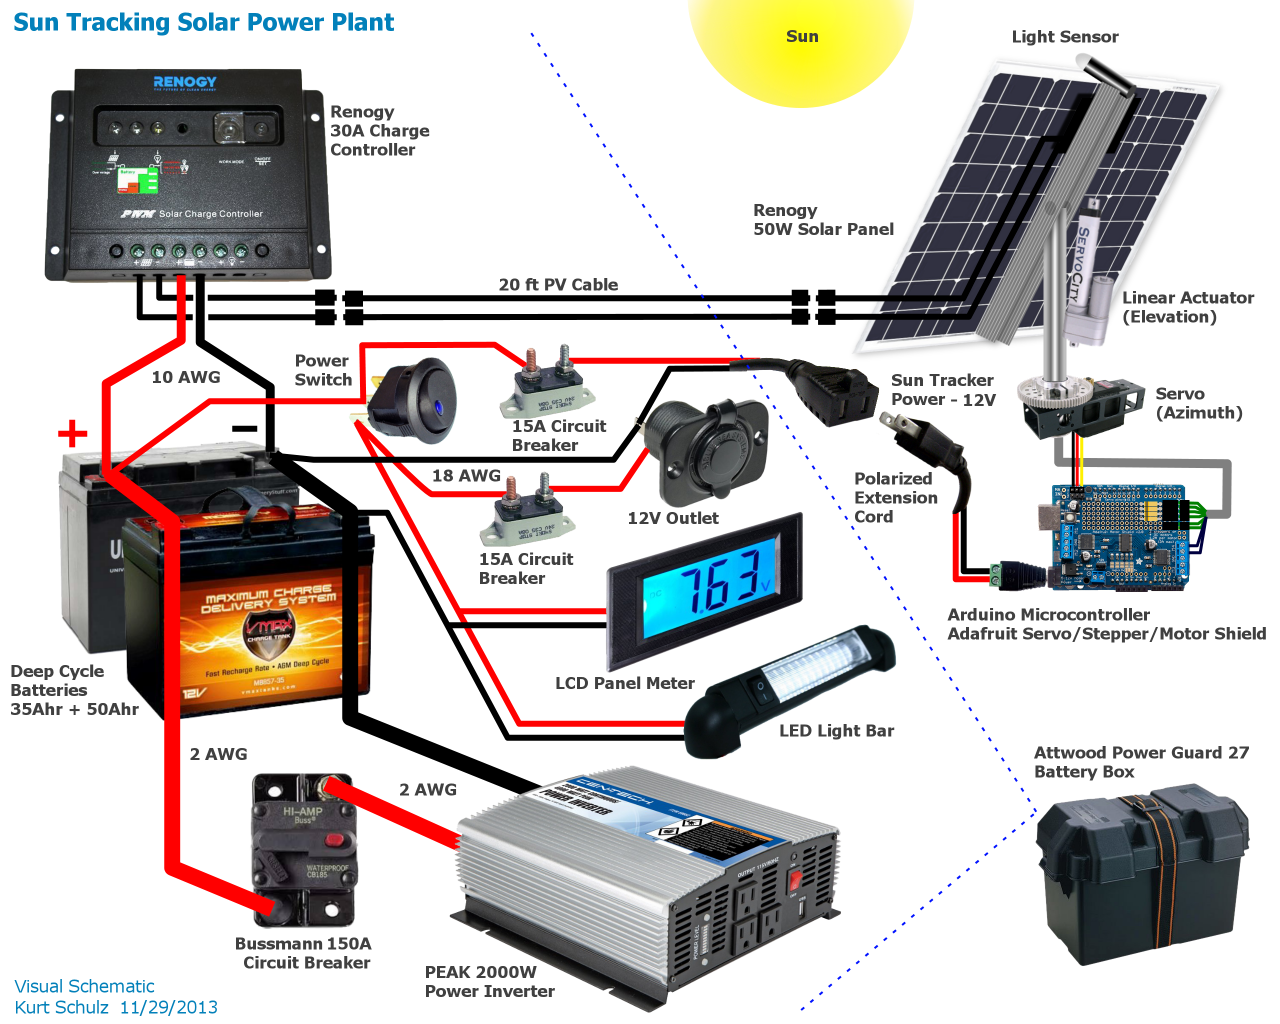 How to install a solar system - Solar Generator Wire Diagram Toyota Engine Parts Diagram 2 4 2bf1d4e4007b683bf34a6da4094ad404 Solar Generator Wire Diagramhtml